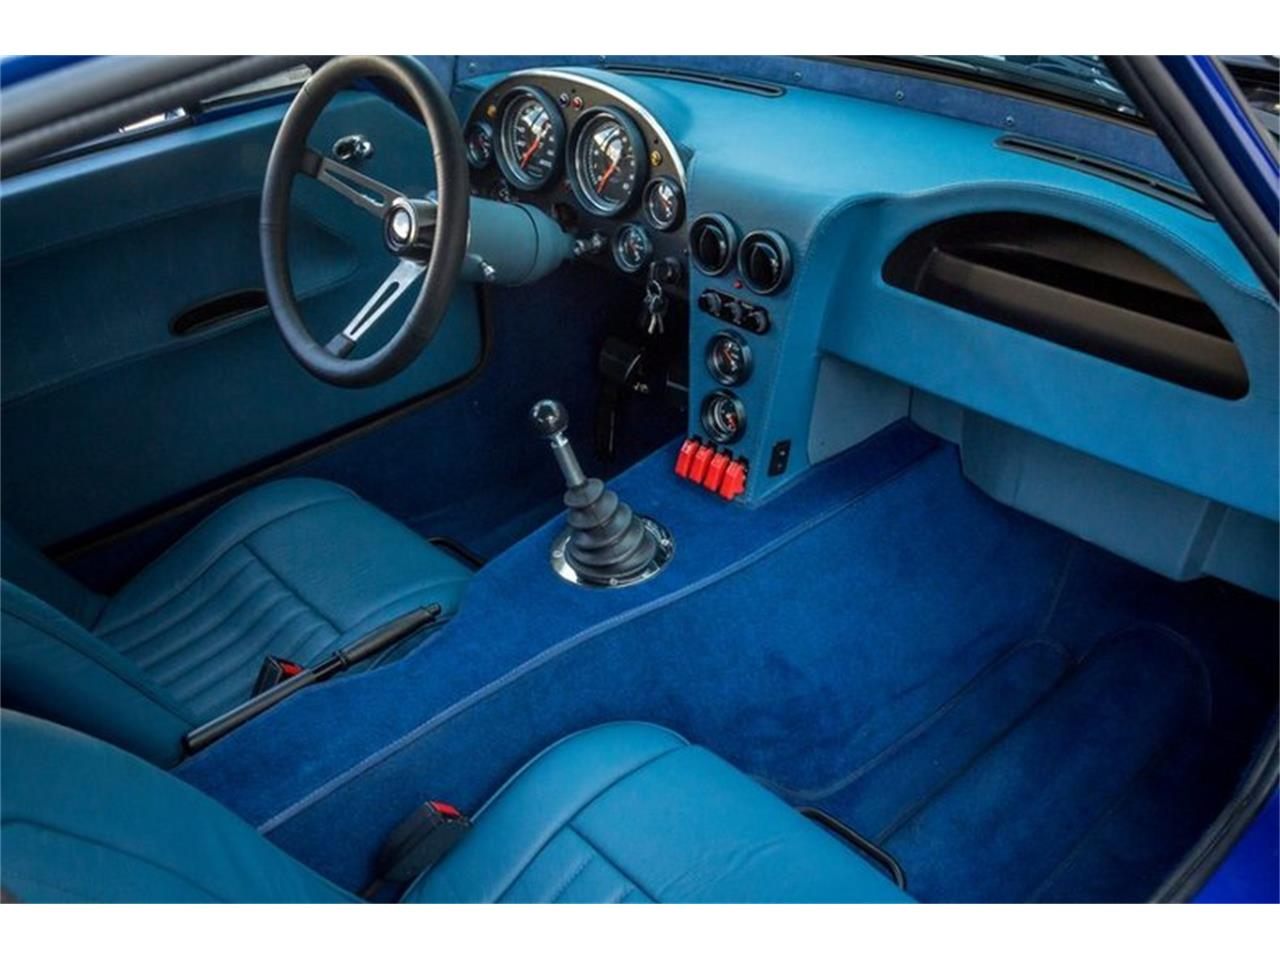 1963 Superformance Corvette Grand Sport for sale in Irvine, CA – photo 9